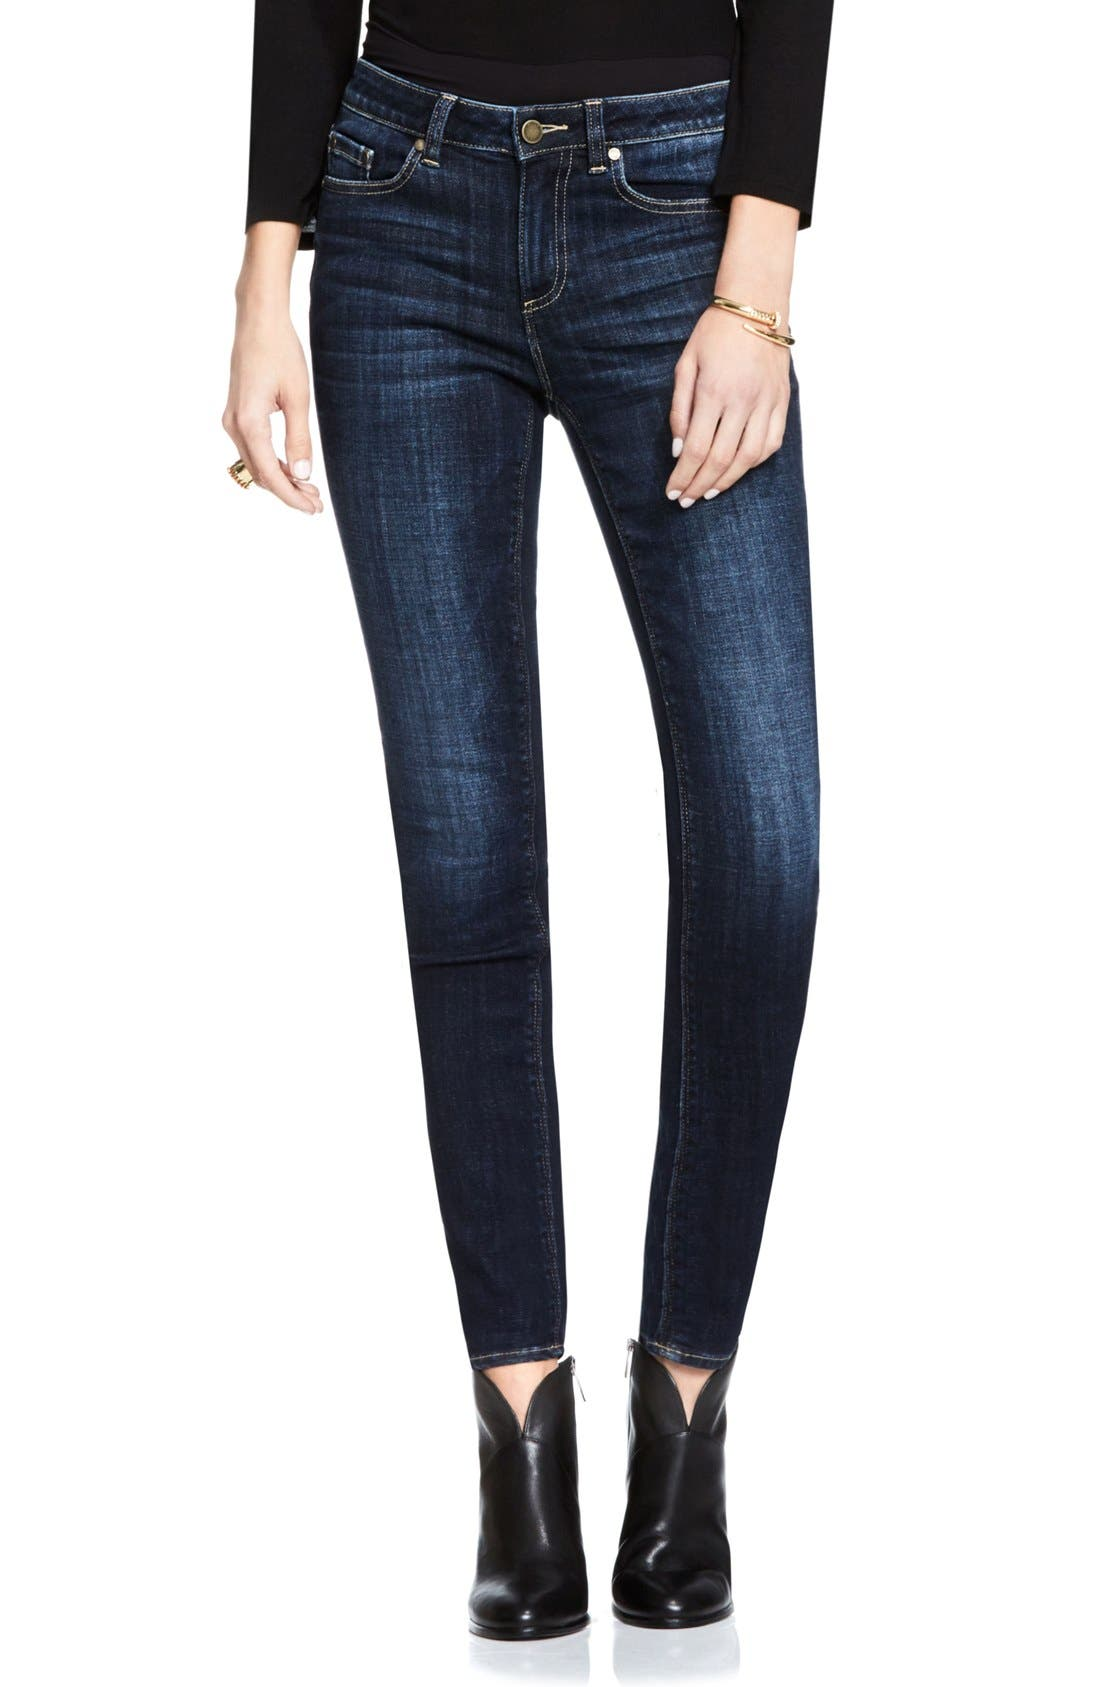 Alternate Image 1 Selected - Vince Camuto Stretch Skinny Jeans (Regular & Petite)